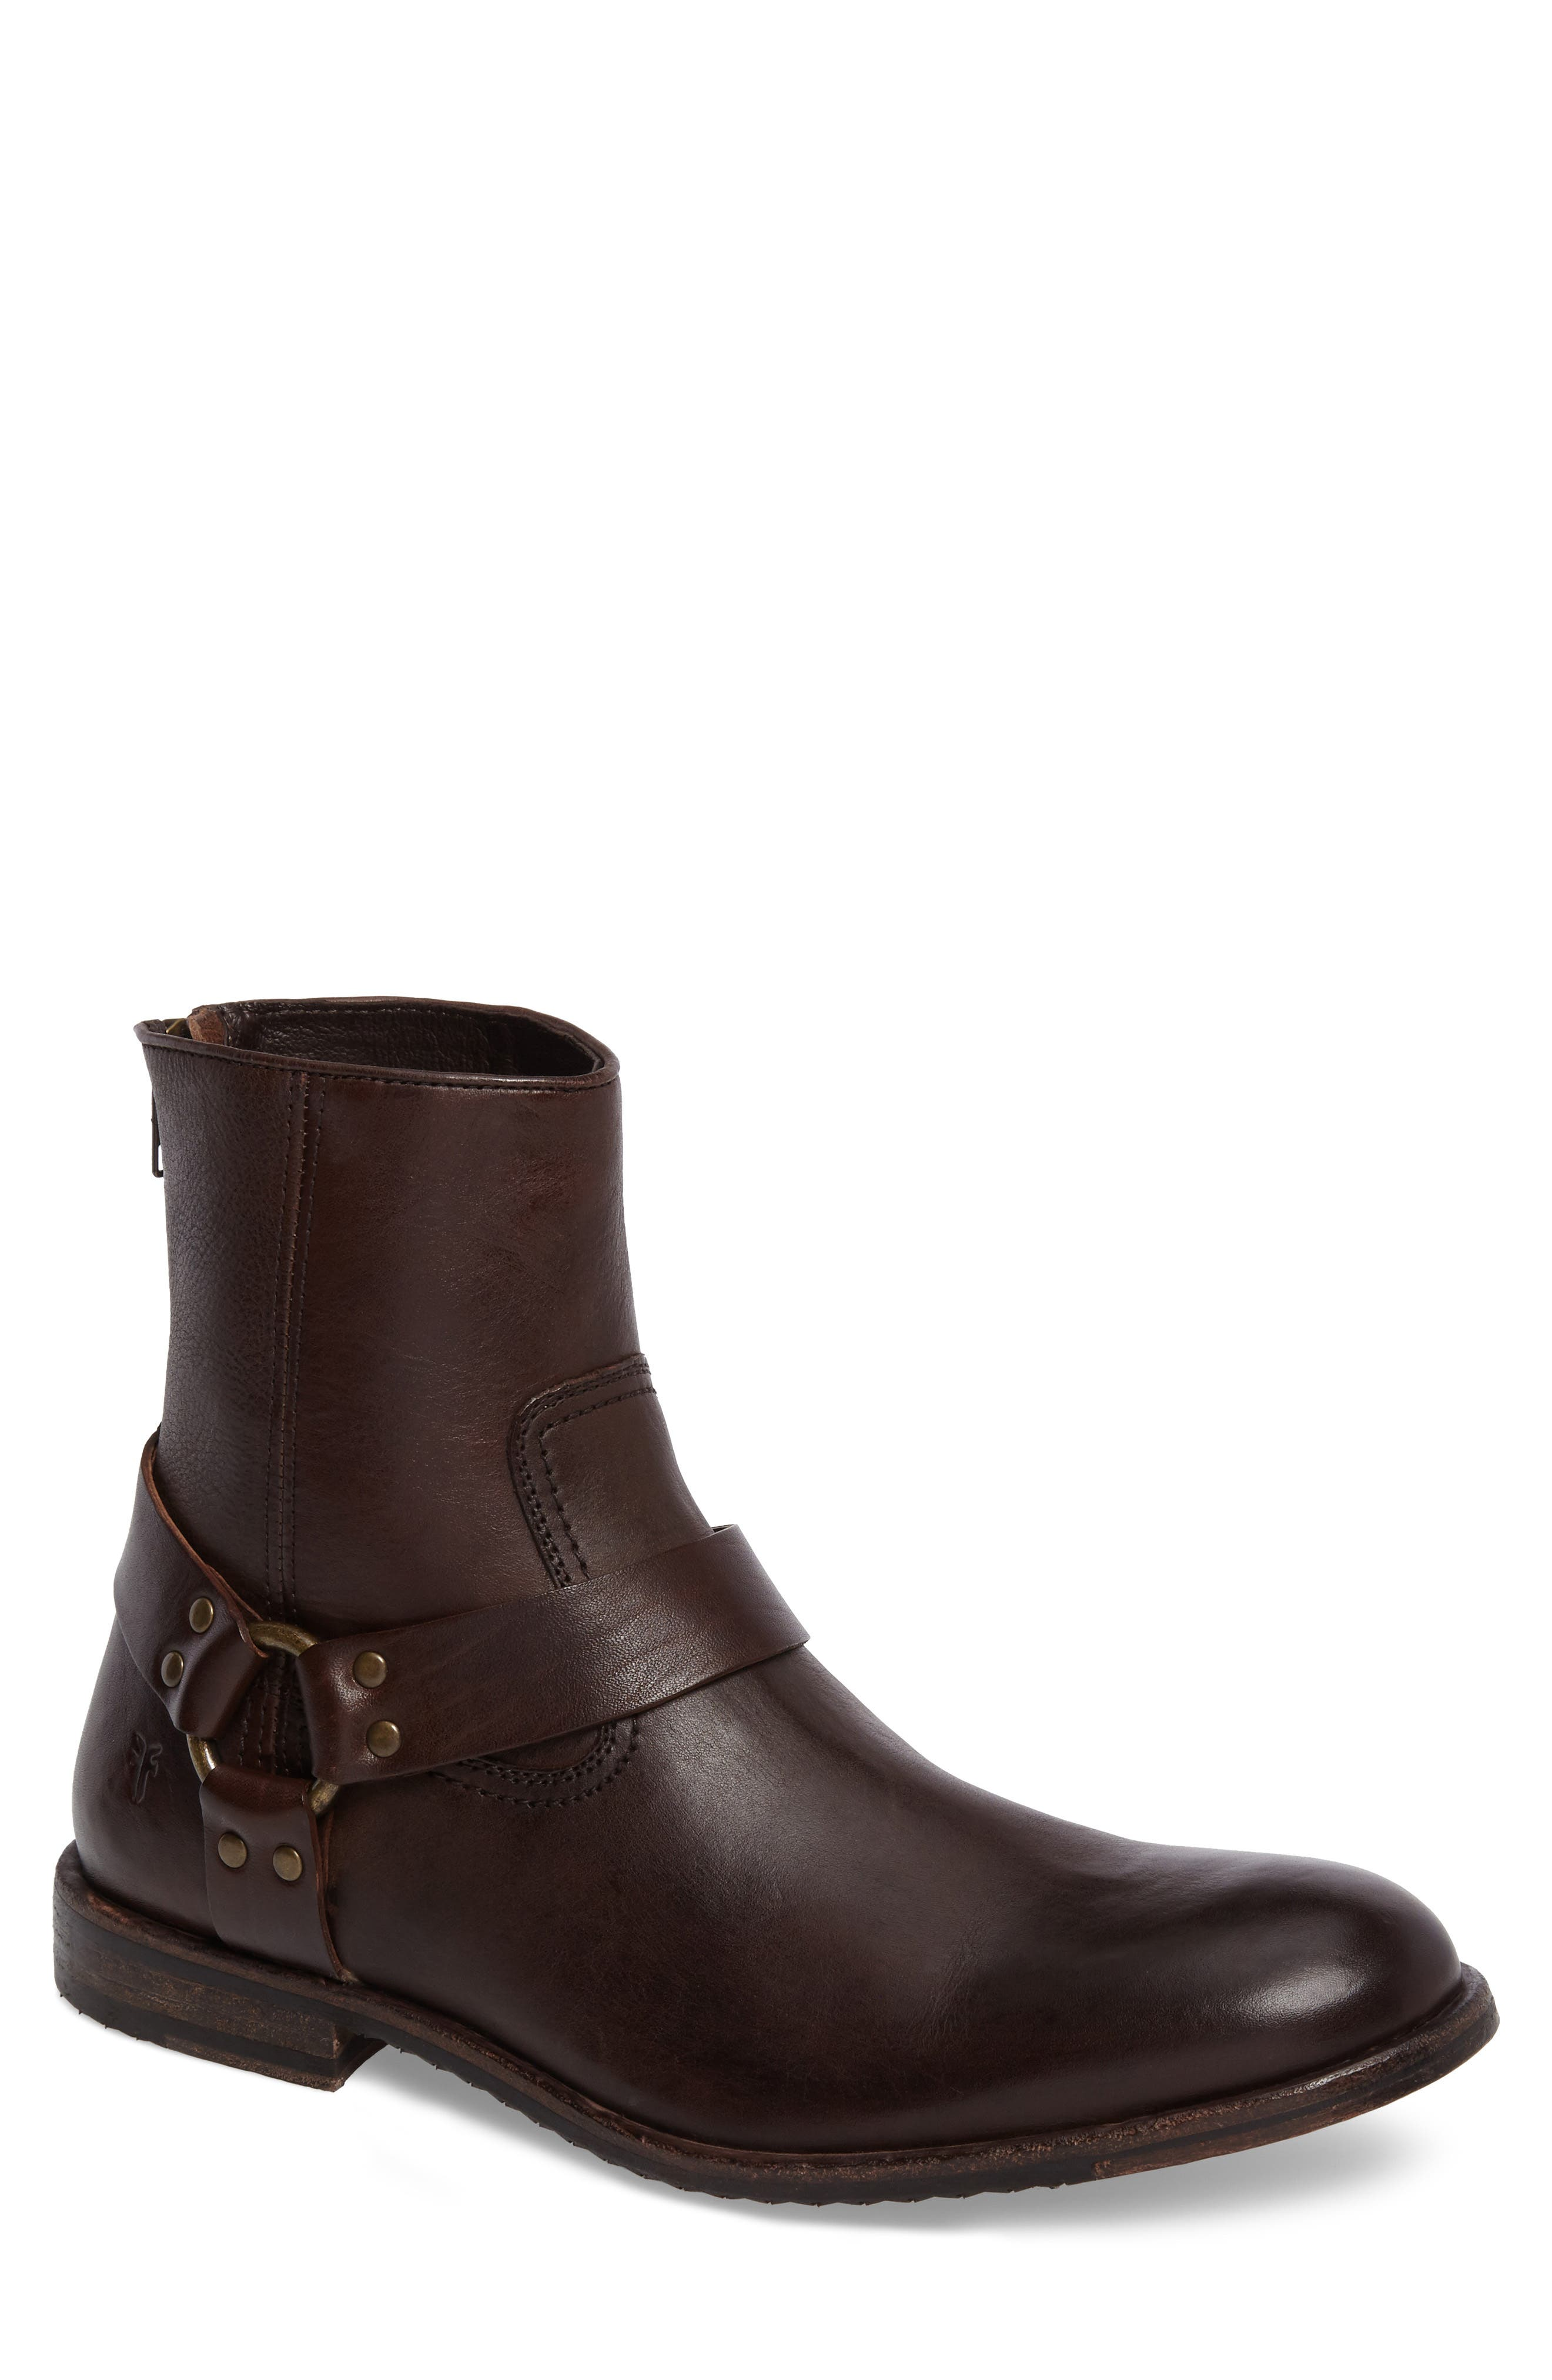 Sam Harness Boot,                         Main,                         color, Dark Brown Leather